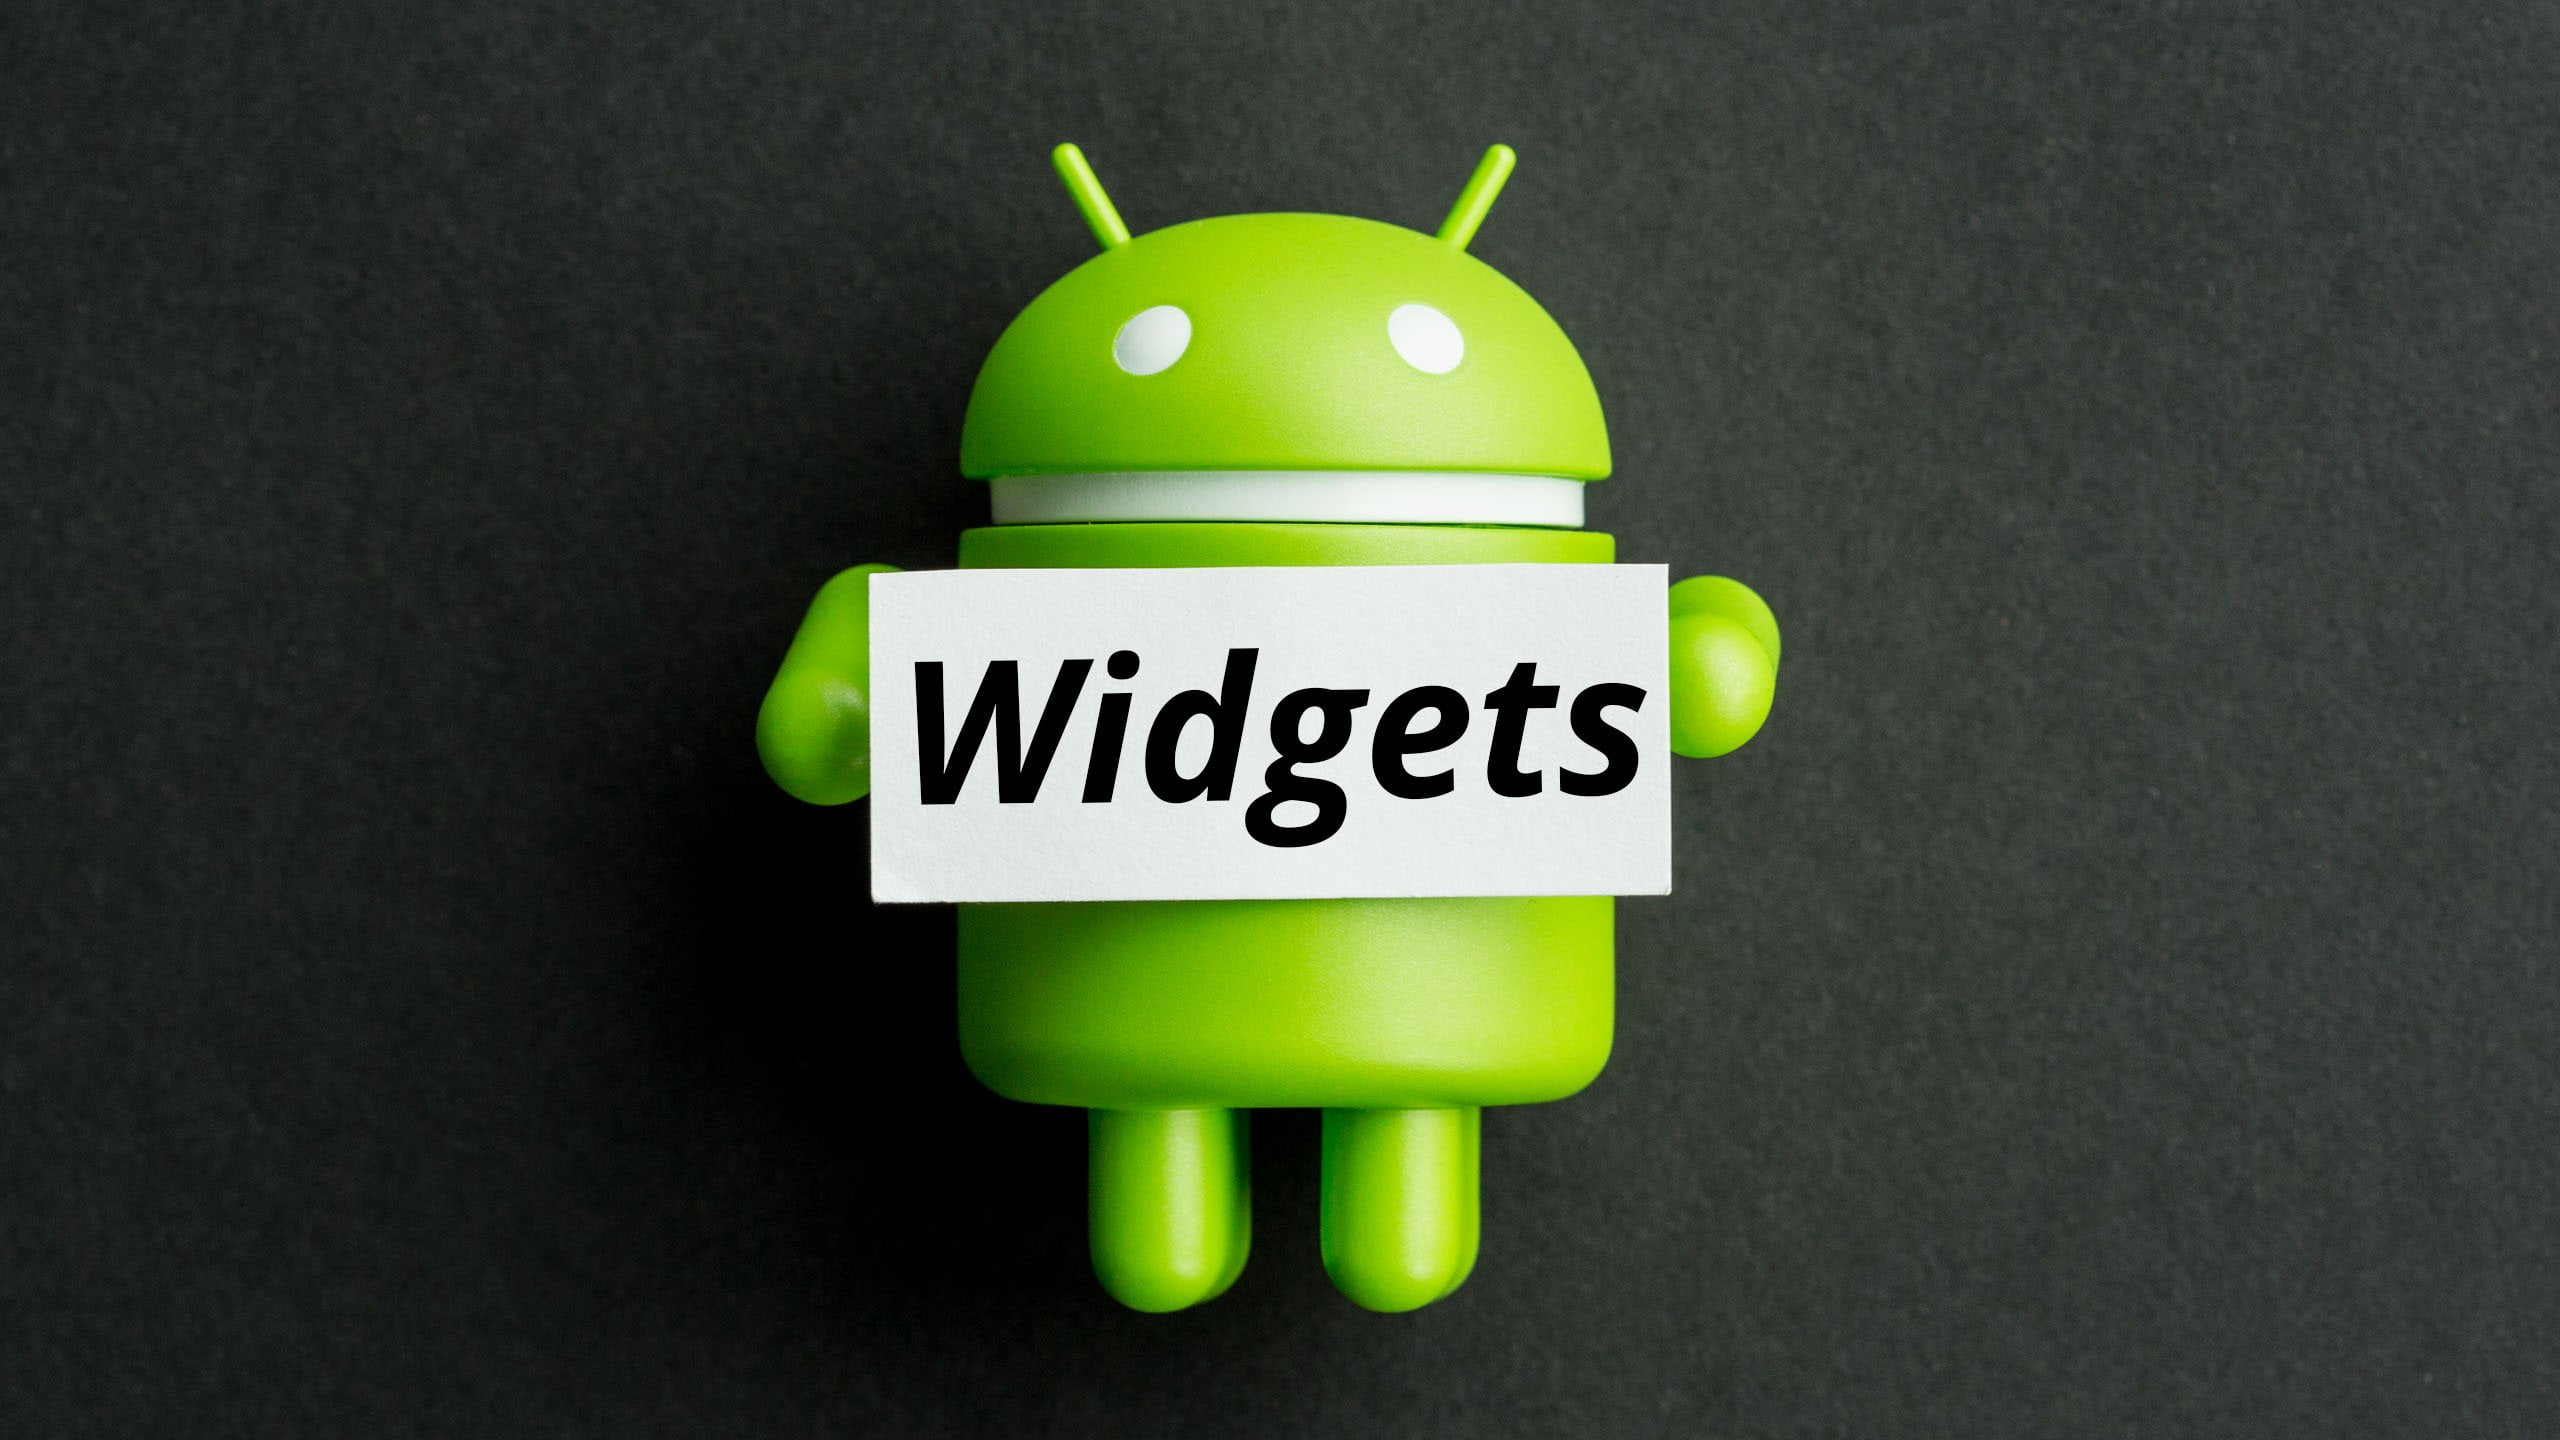 add or resize widgets on Android